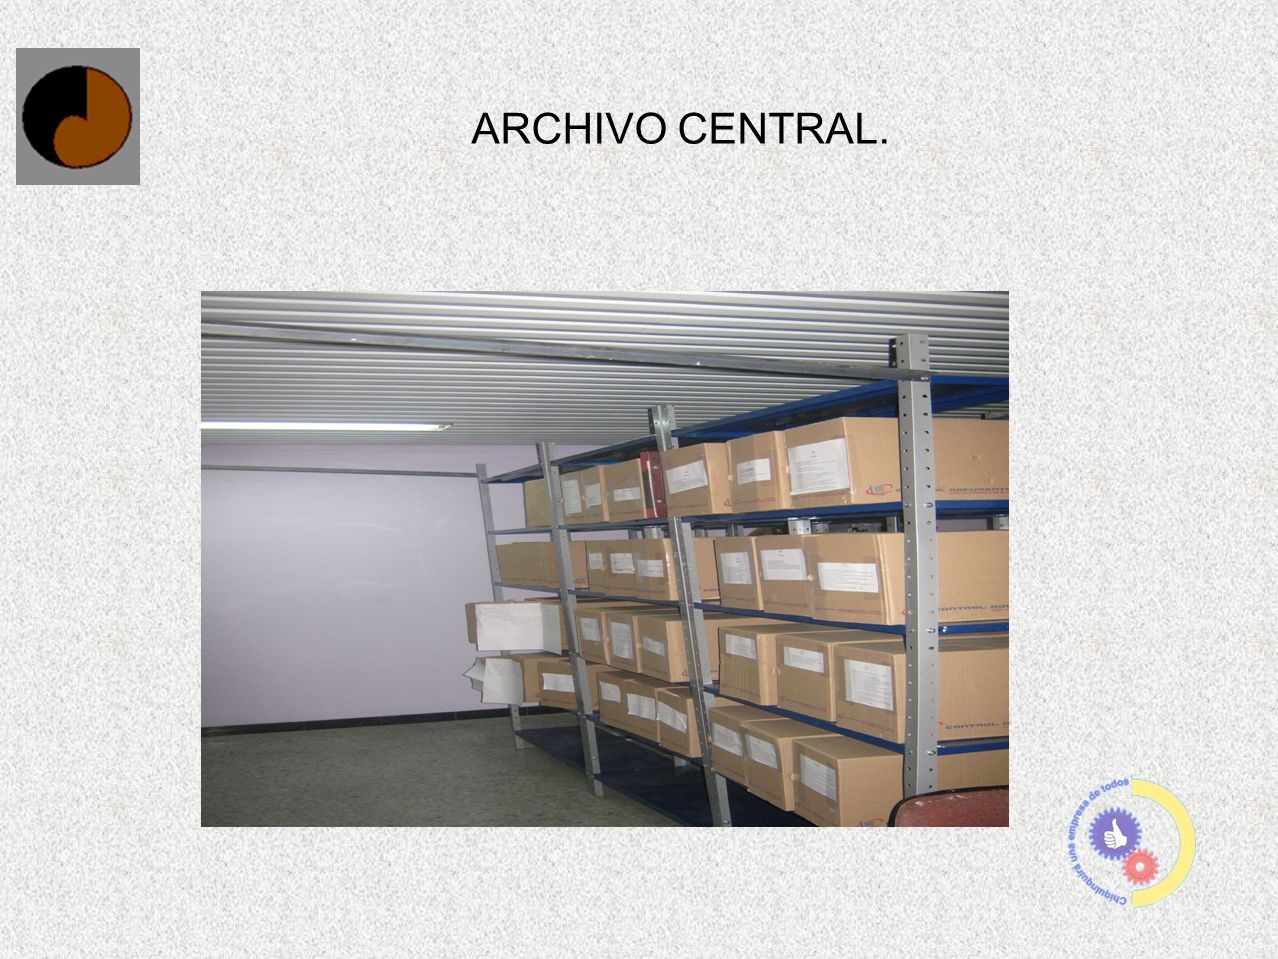 ARCHIVO CENTRAL.